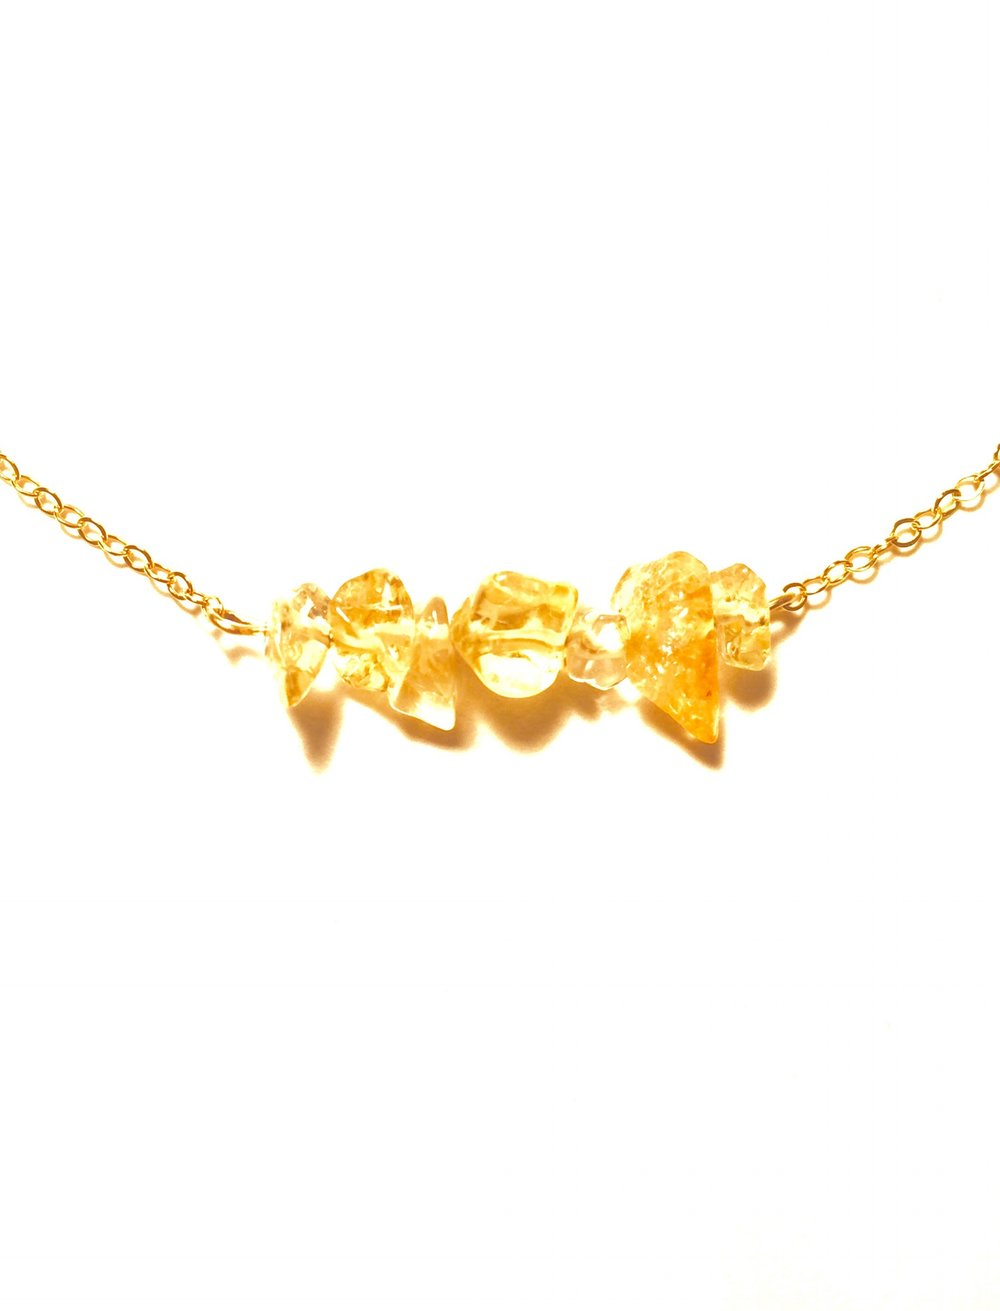 gold-filled necklaces